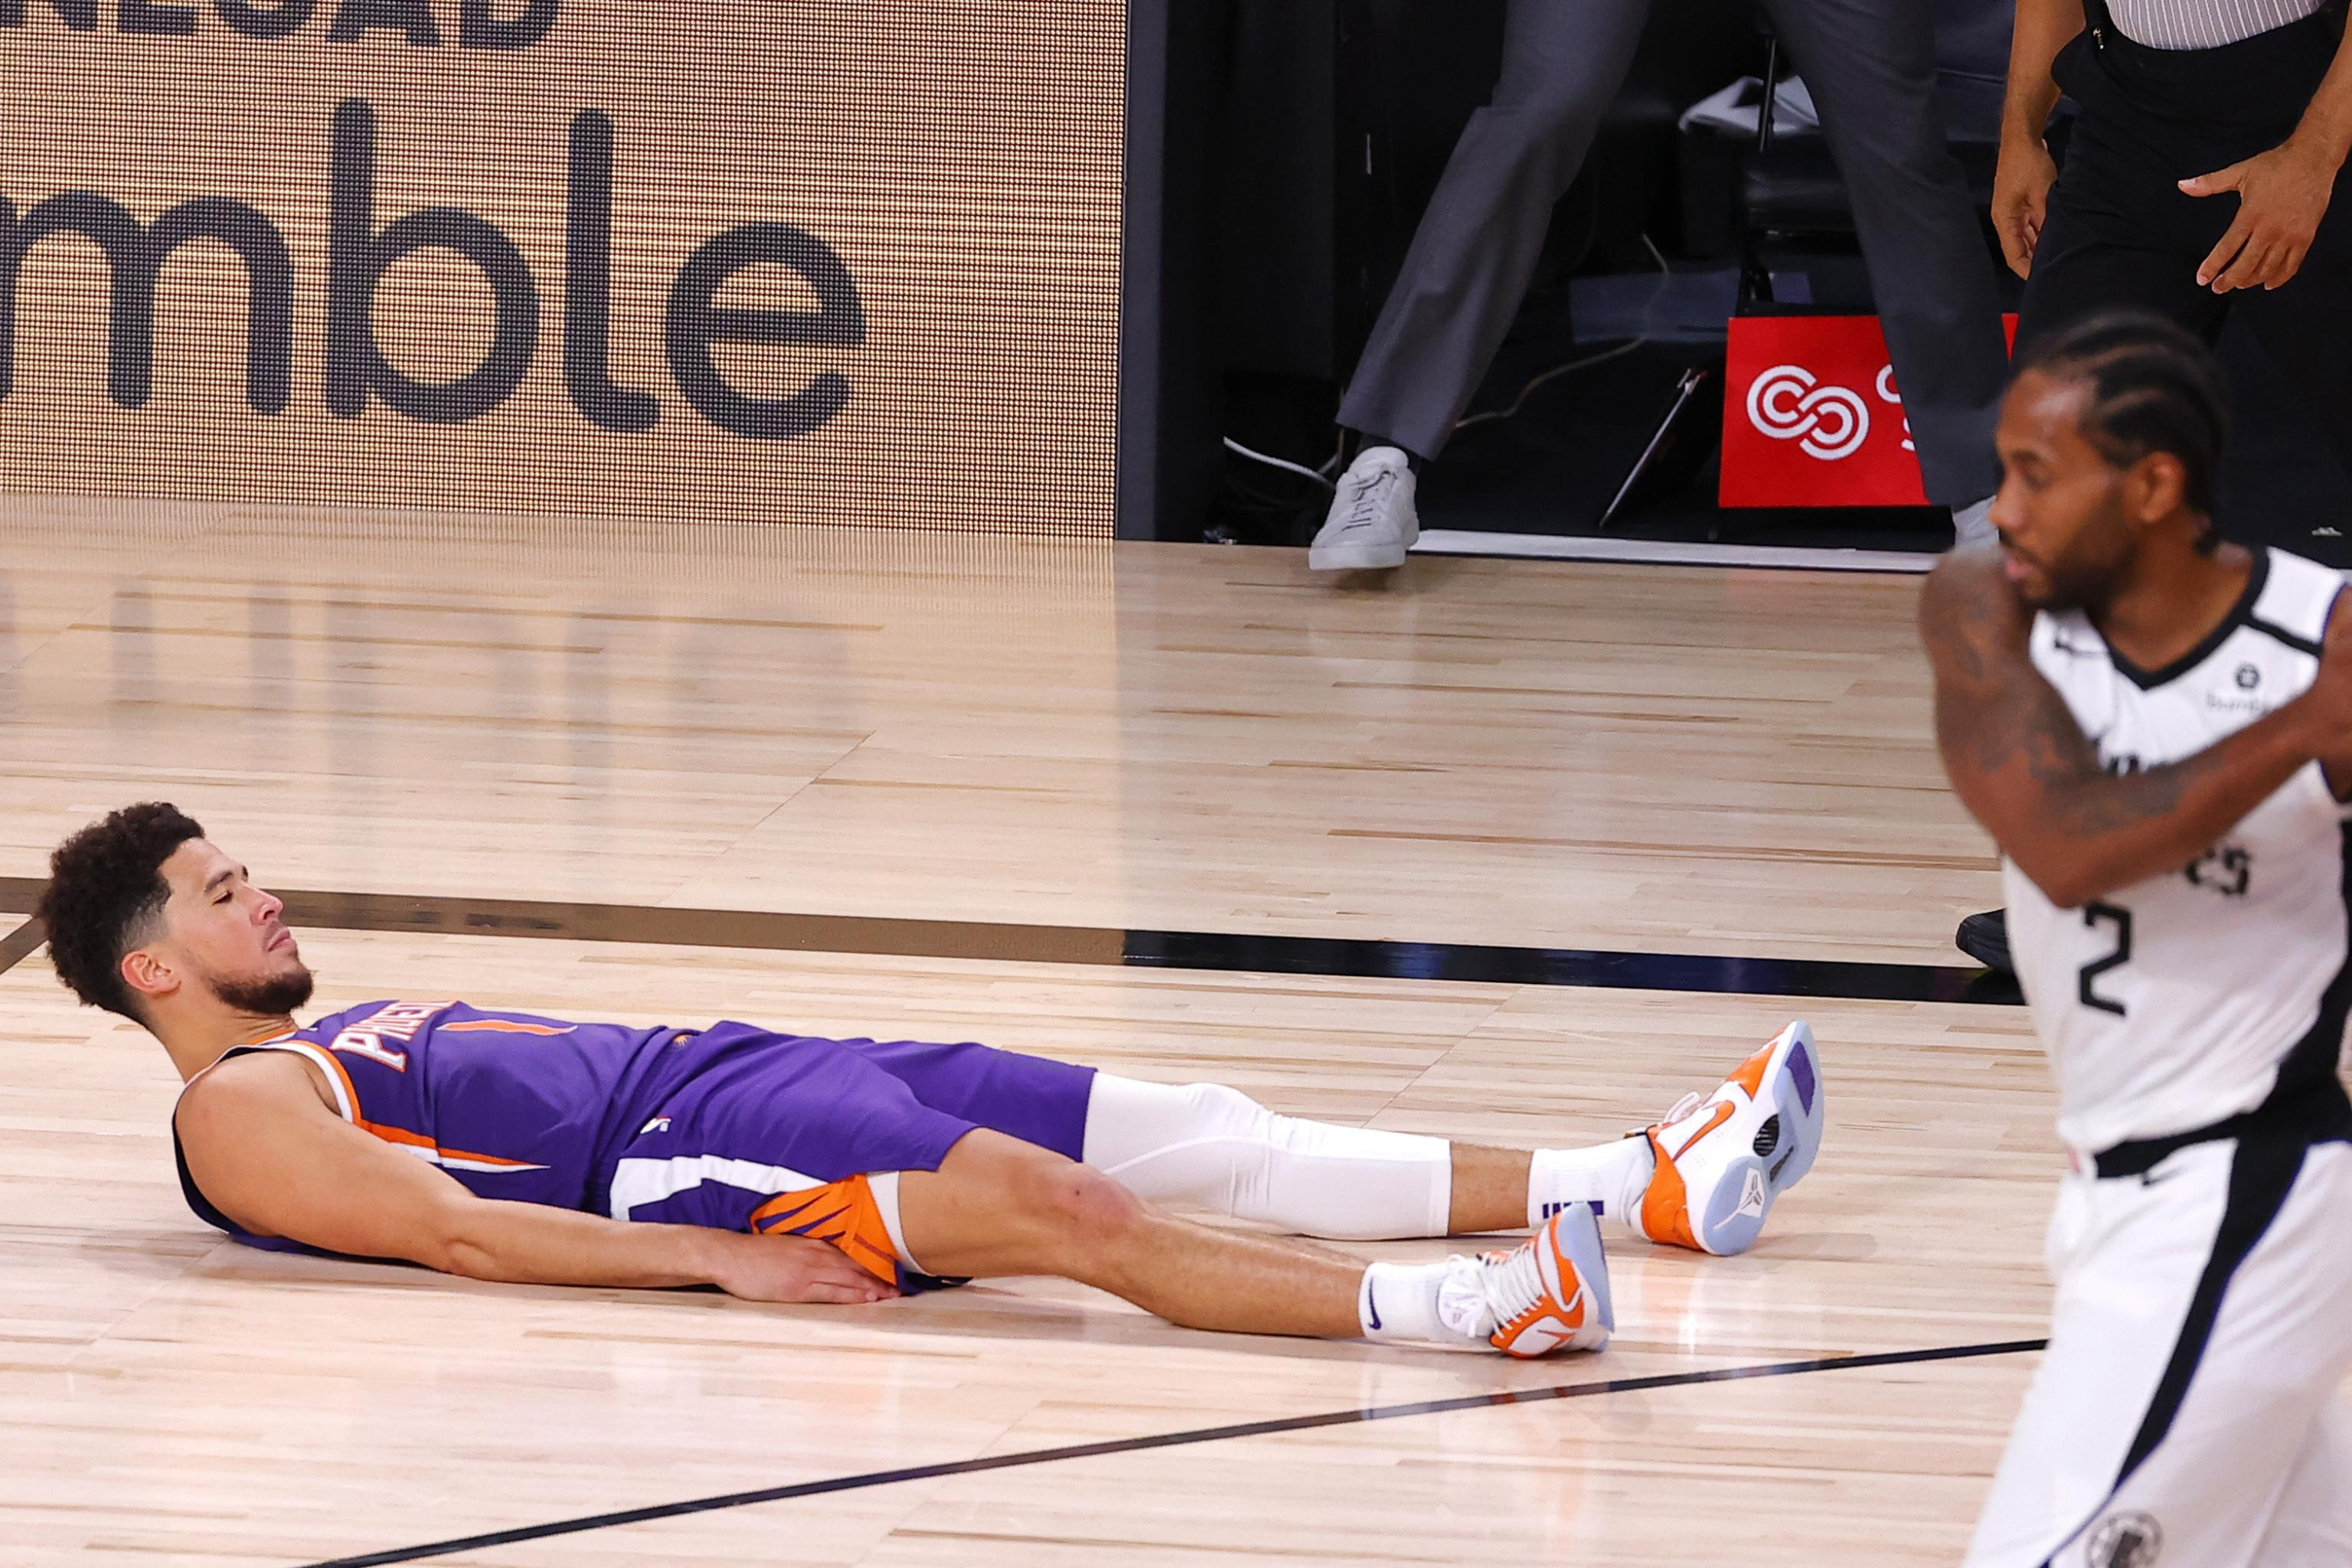 Suns' Devin Booker on Game-Winning Photo: 'I'm Not a Big Celebration Guy' | Bleacher Report | Latest News, Videos and Highlights